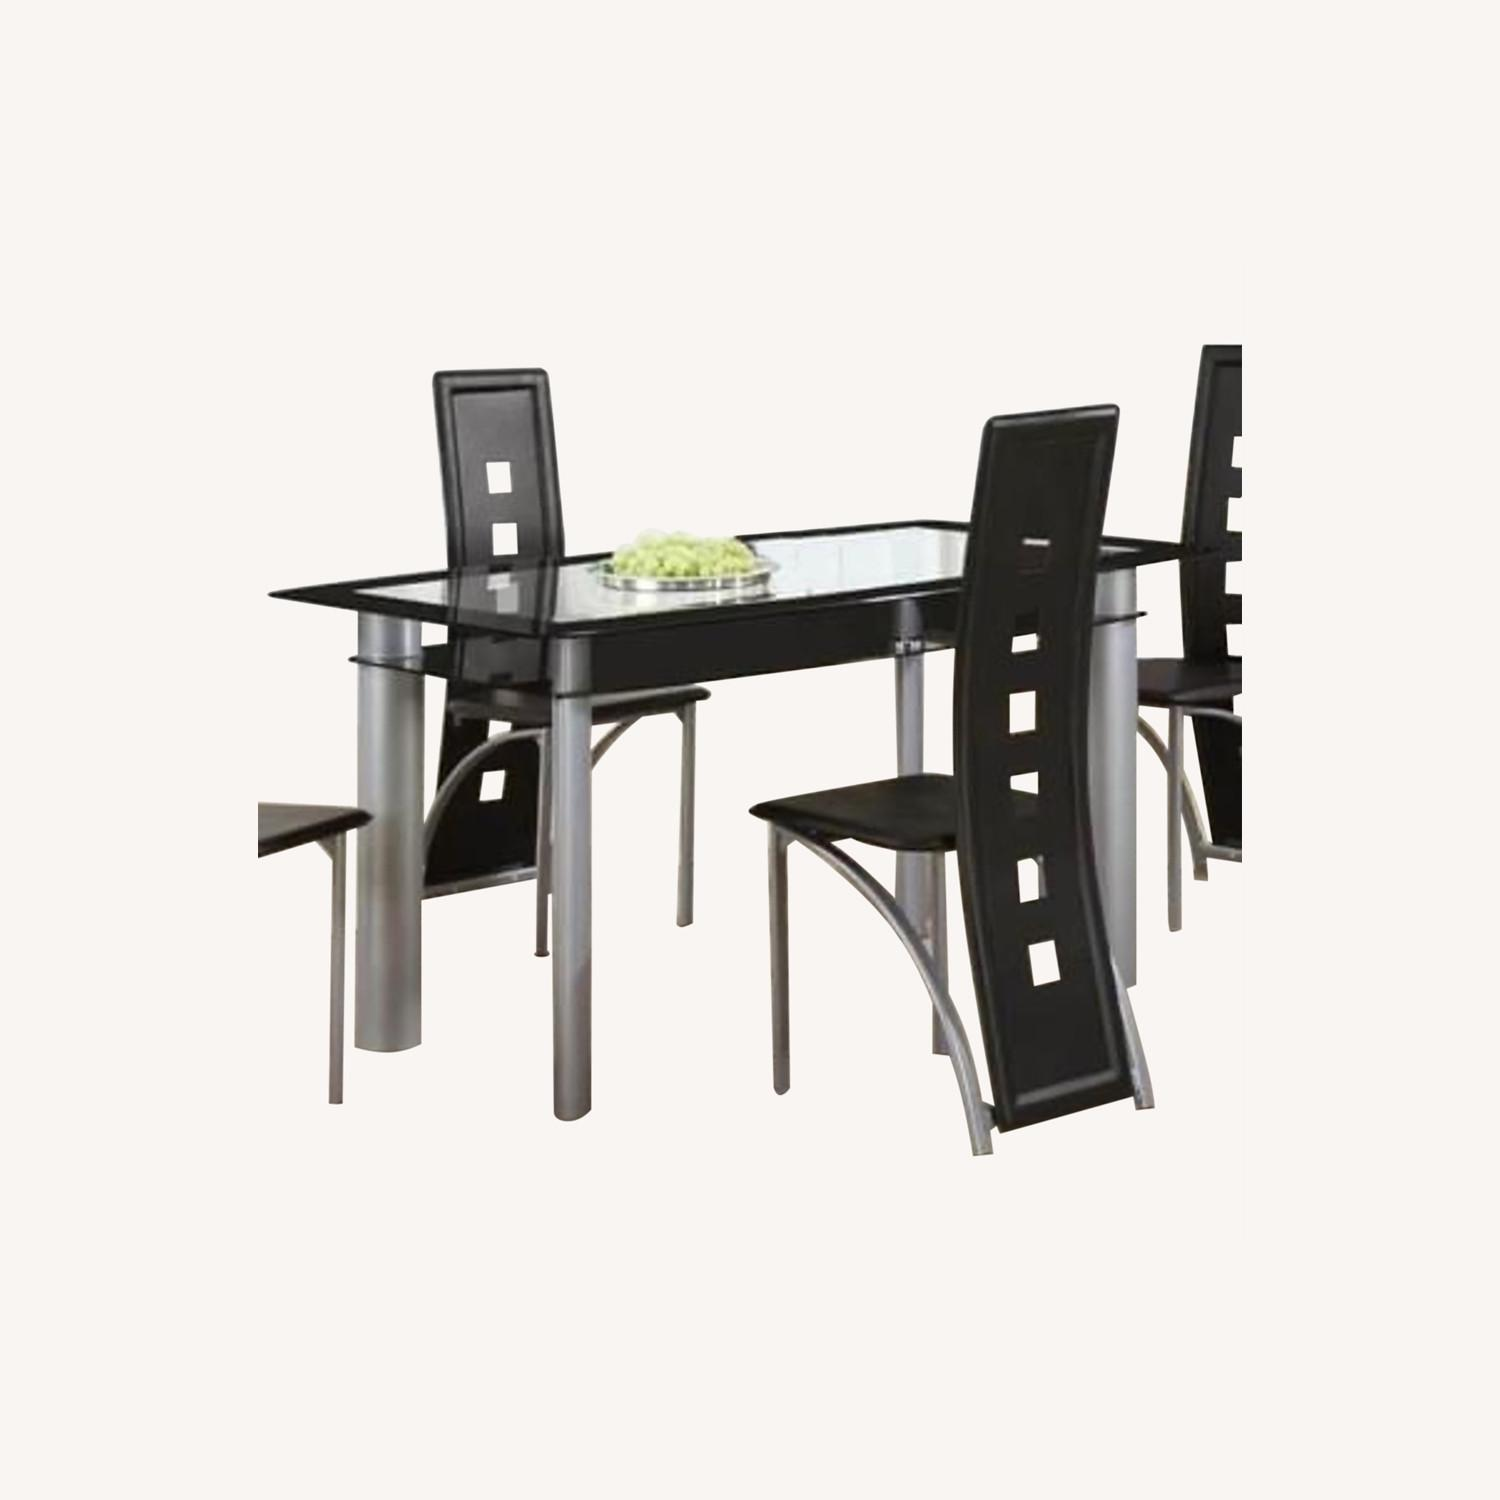 Wayfair Black Dining Table Set with Chairs - image-0